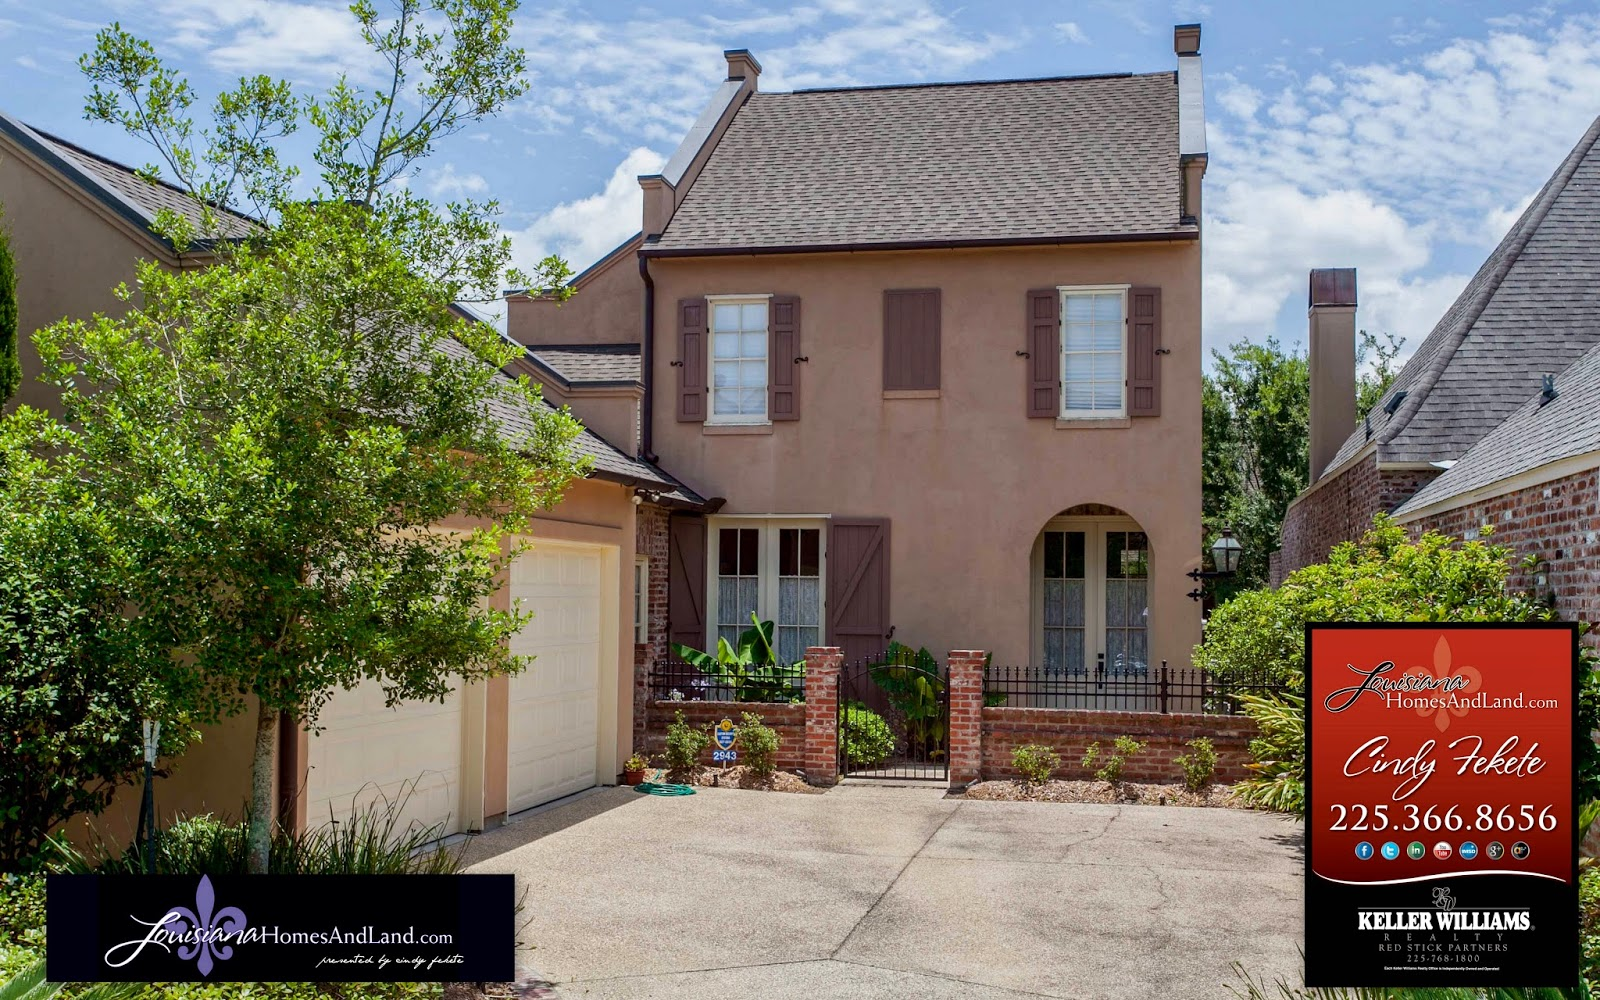 Homes for sale in university club plantation under 450 for Homes for sale in baton rouge with swimming pools